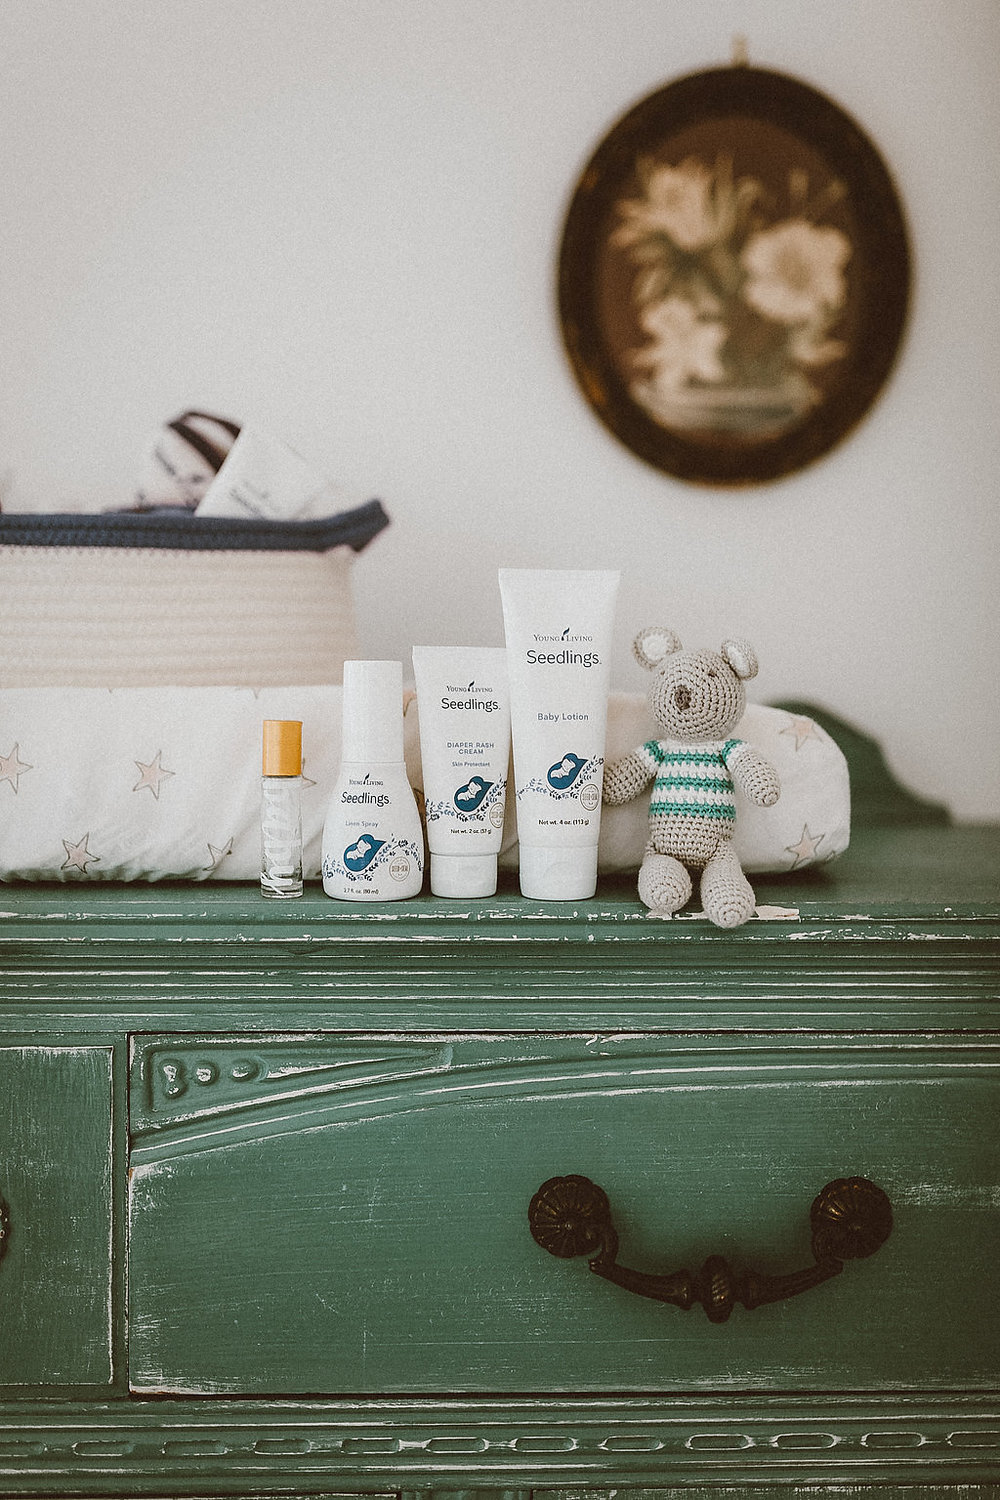 seedlings - A line of clean, safe products specifically created for you and your little one. This line includes my all-time favorite baby wipes (so thick and soft!), a tear-free shampoo, soothing lotion, diaper rash cream, baby oil, and a linen spray. Perfect for all little ones, you and every new mom in your life needs these in your home! Your baby will thank you!